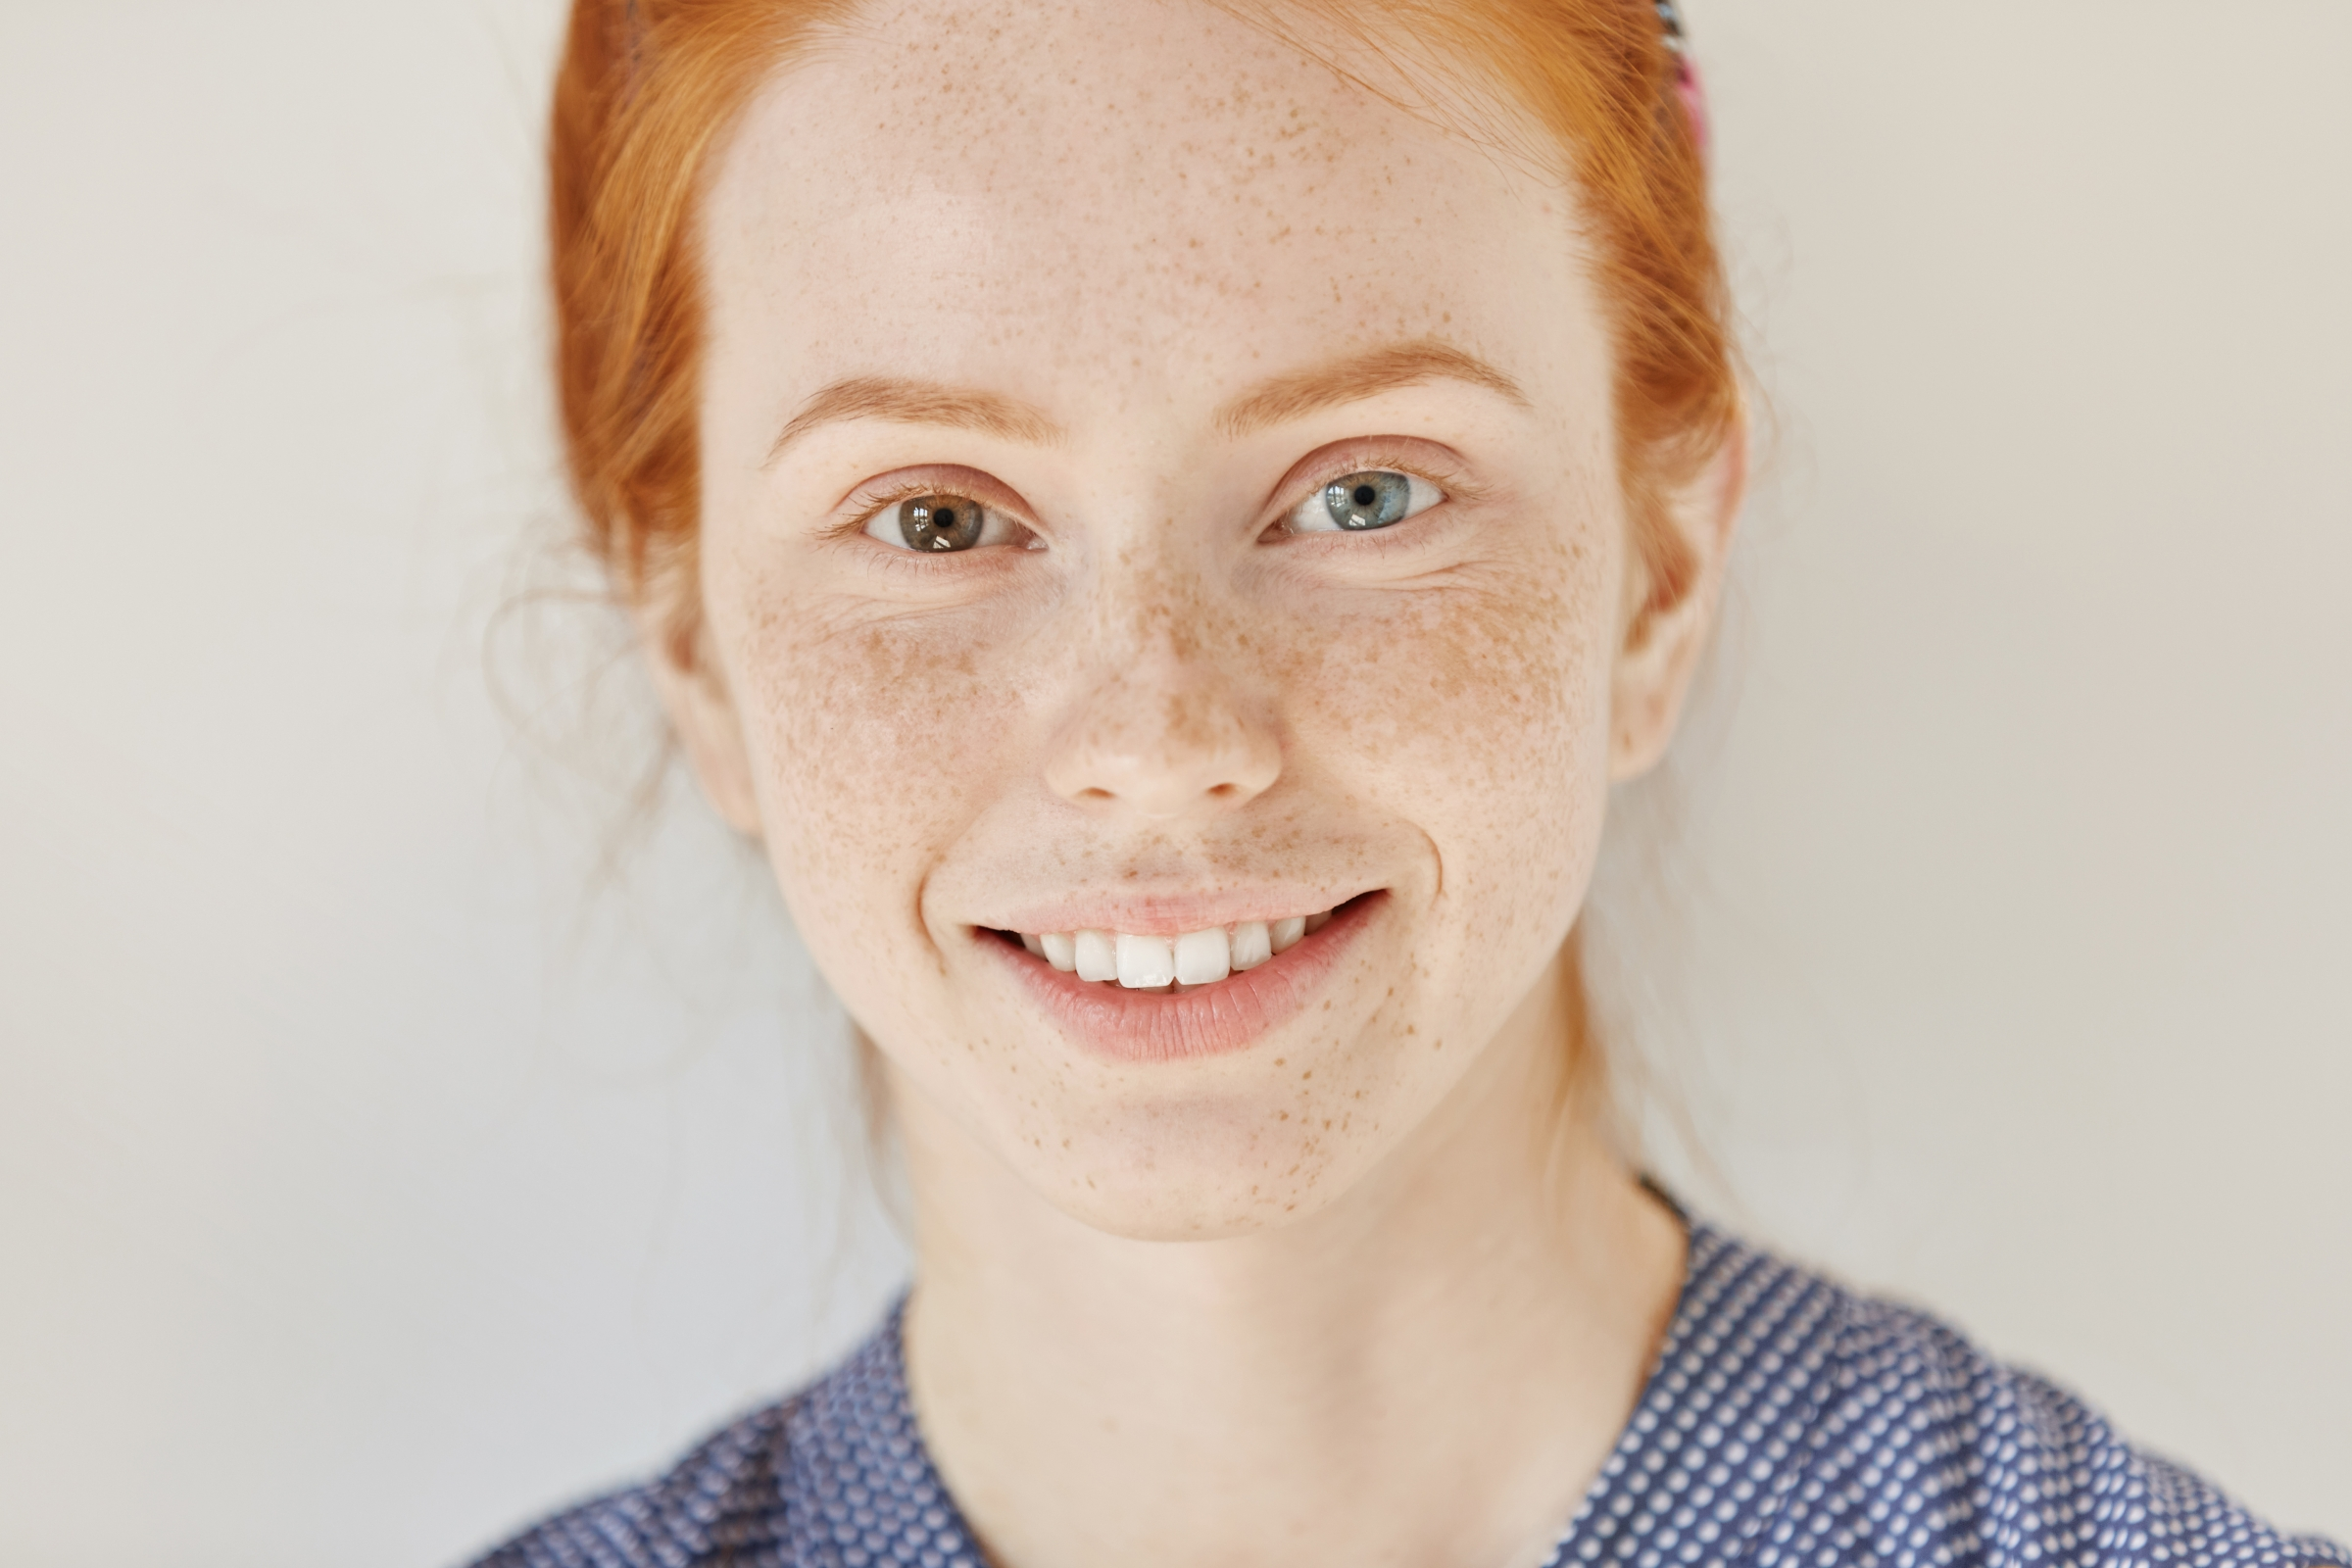 Close-up of smiling redhead with heterochromia - two different colored eyes